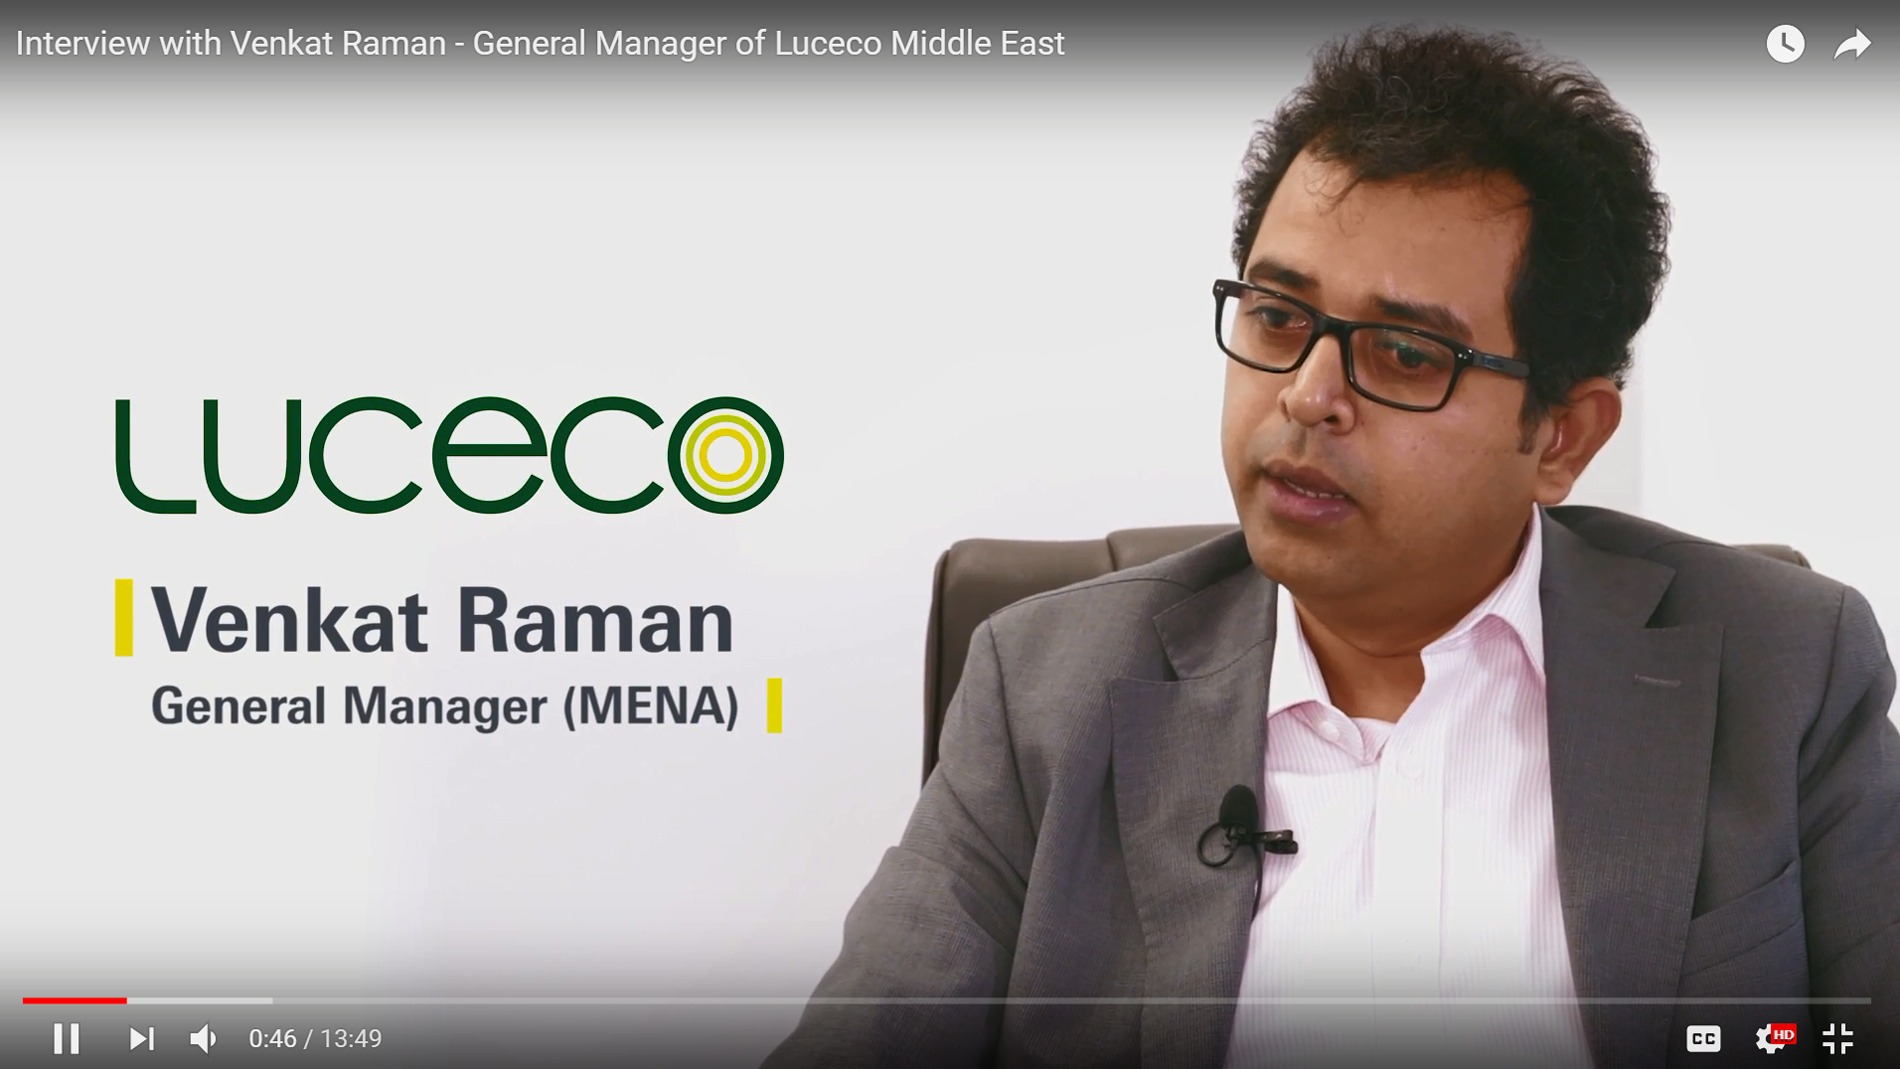 Interview with Venkat Raman - General Manager of Luceco Middle East